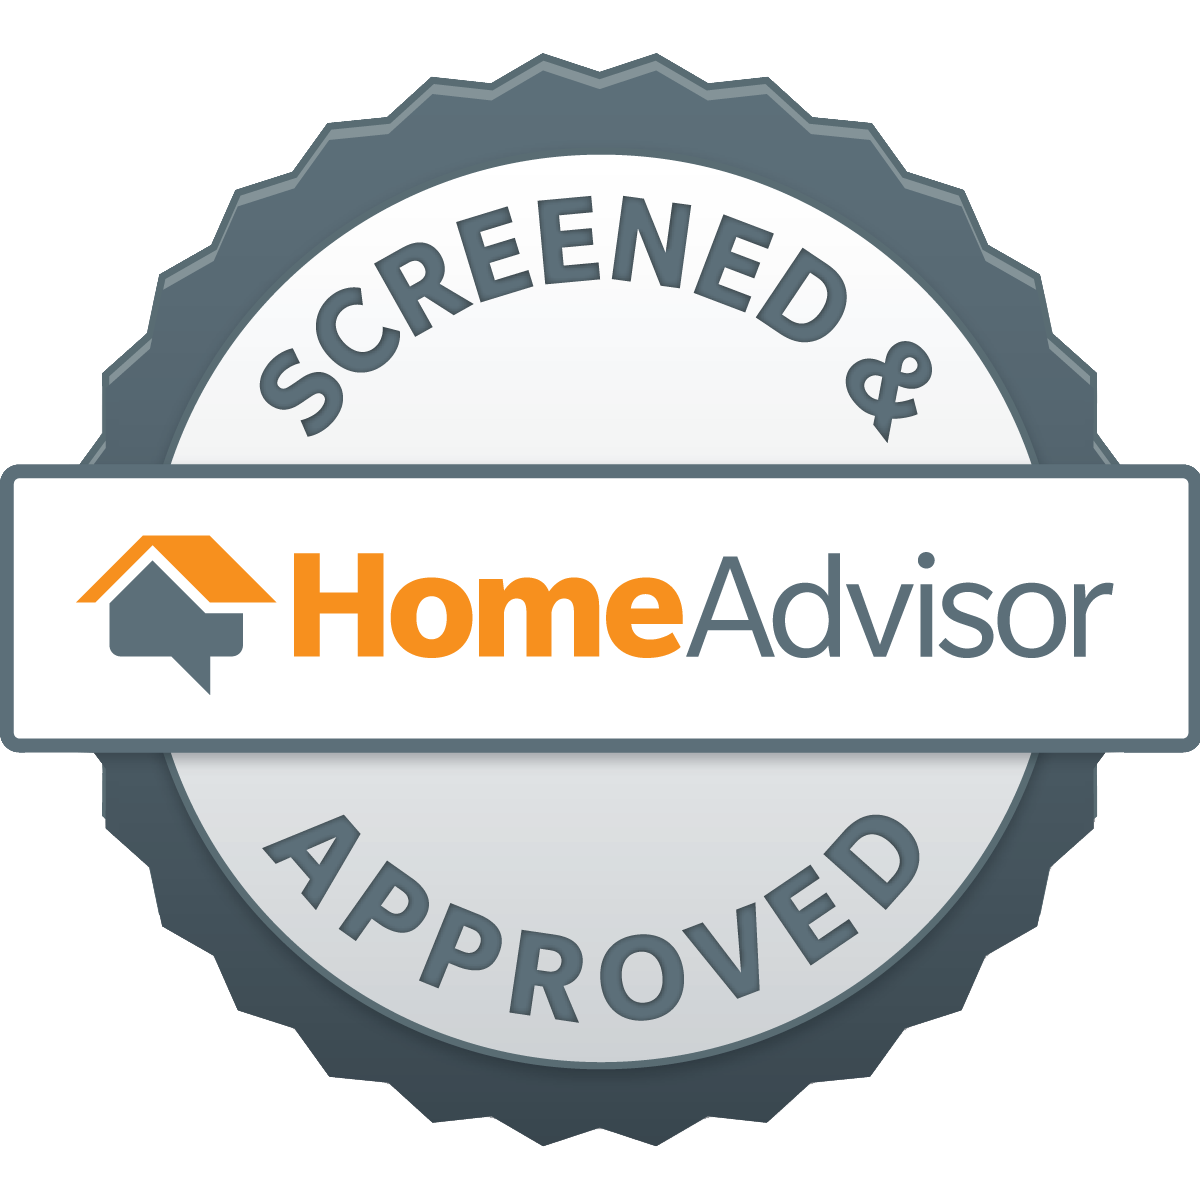 screened-home-advisor.png